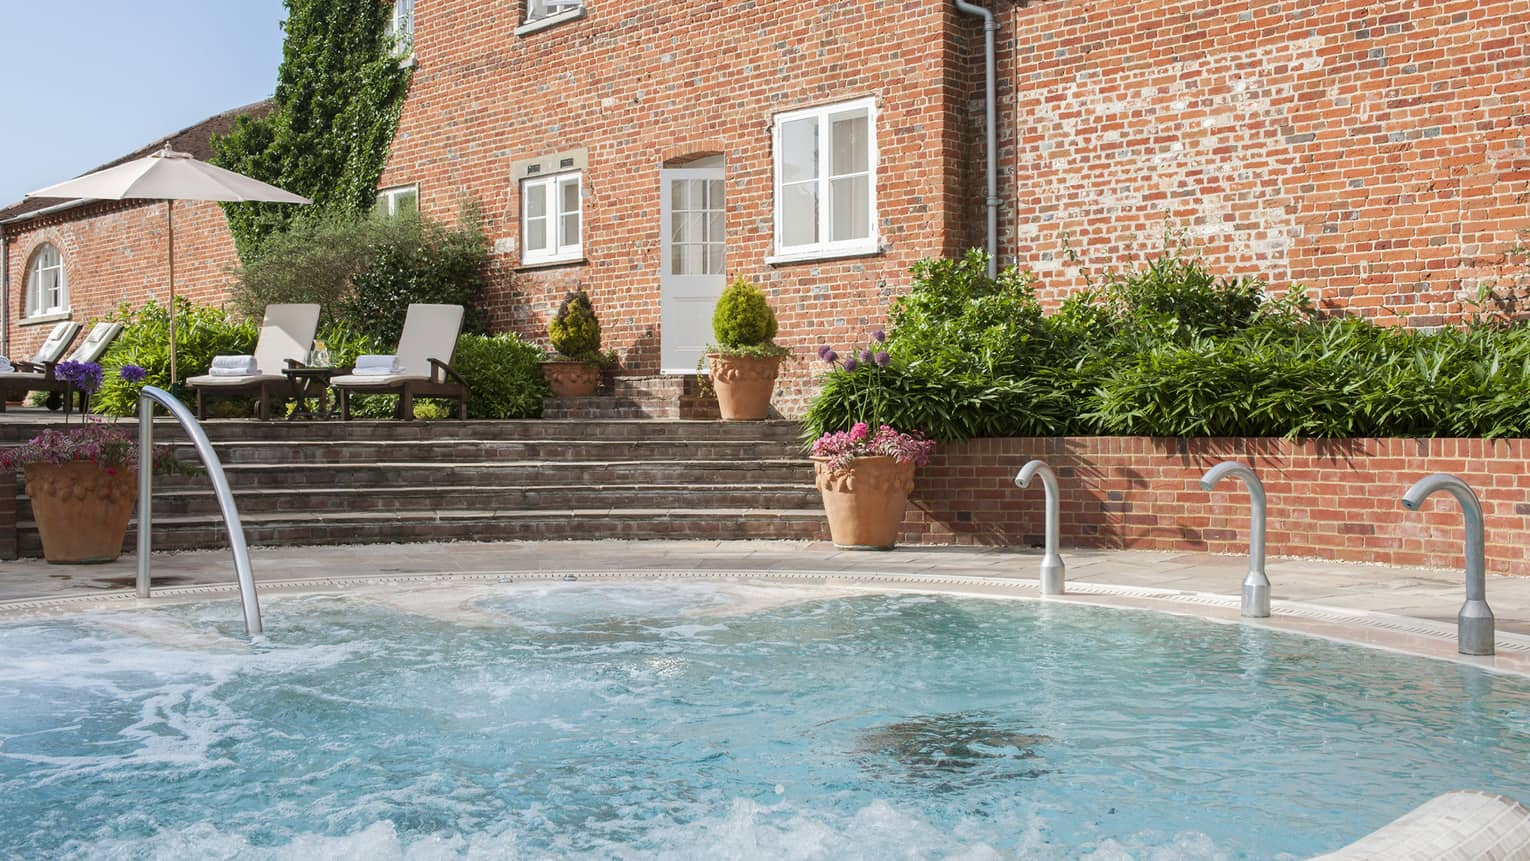 Outdoor swimming pool and steps under red brick hotel exterior on sunny day